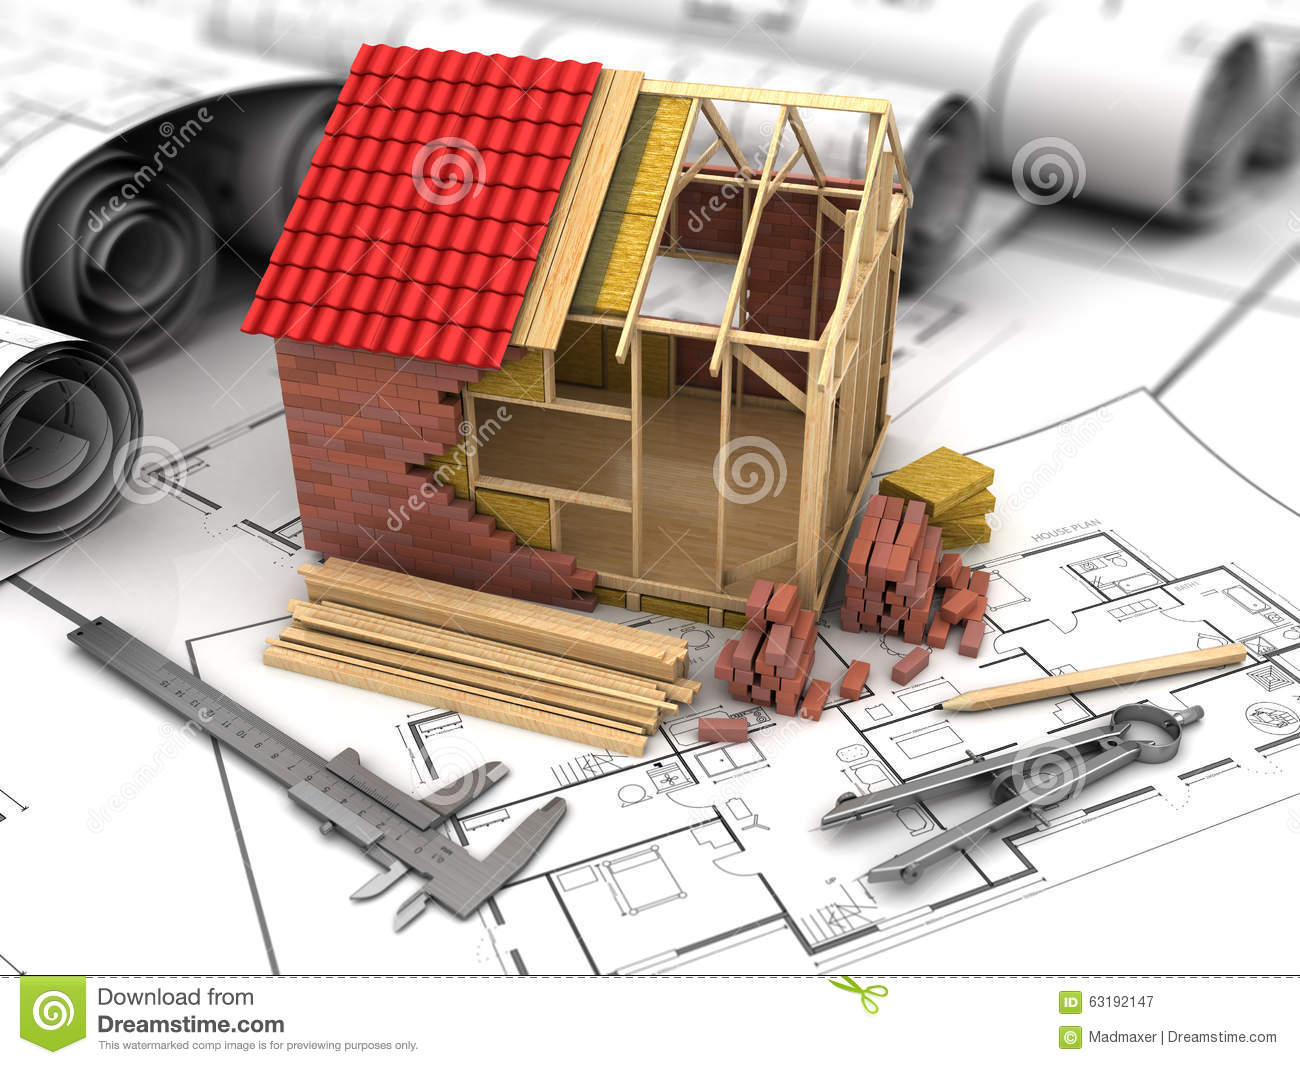 Frame house building stock illustration illustration of blueprint 3d illustration of frame house model and blueprints ccuart Image collections